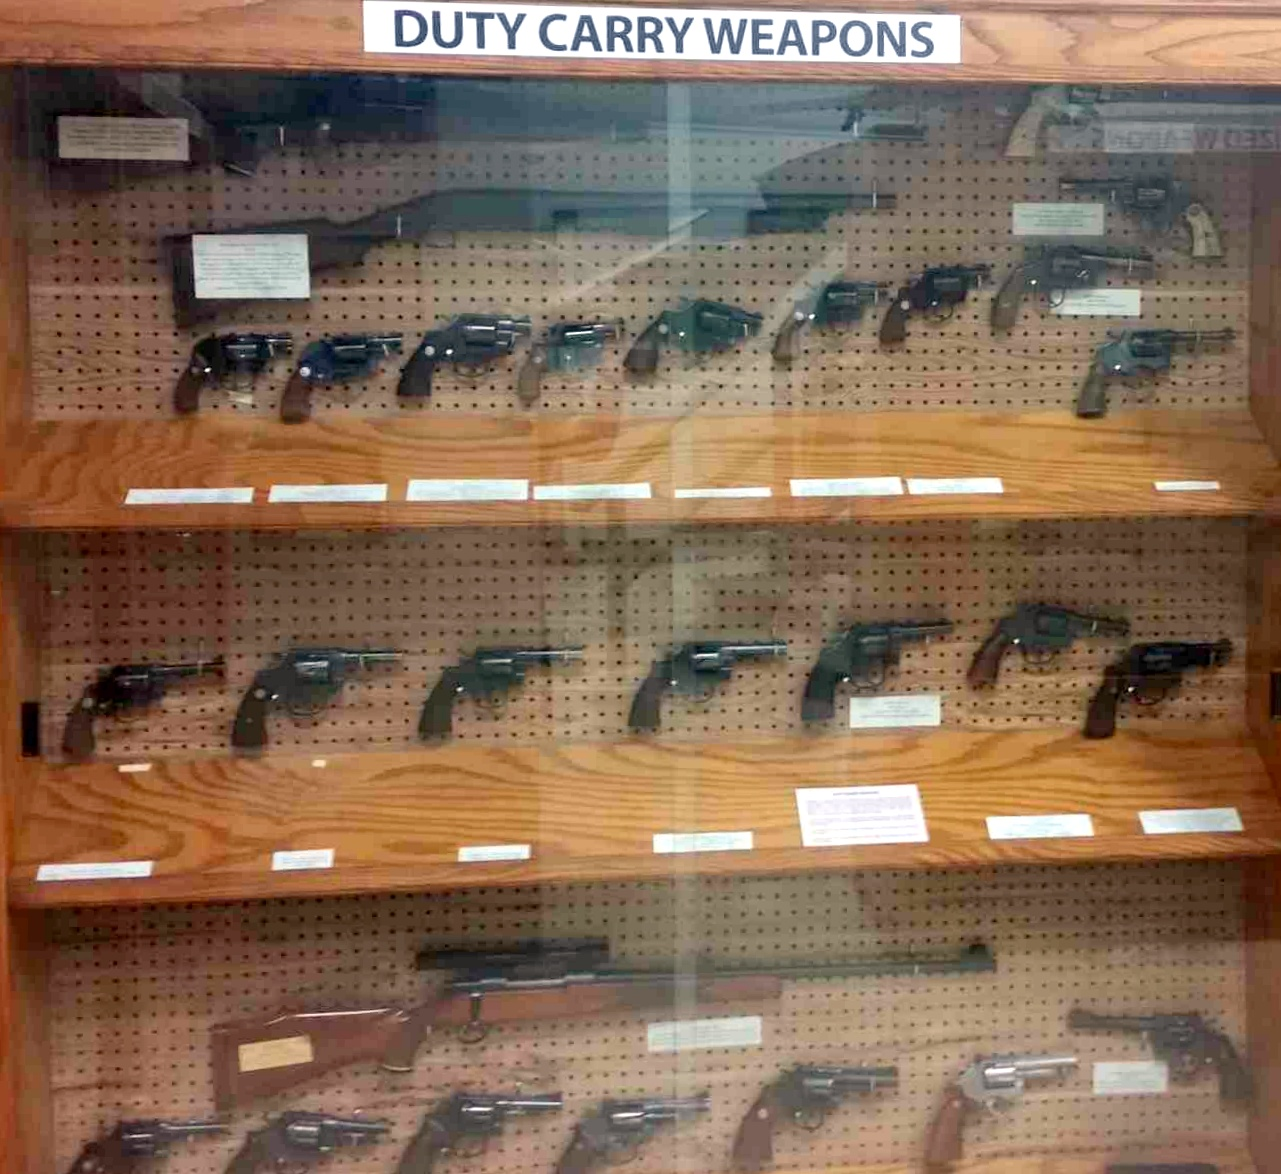 Duty Carry Weapons